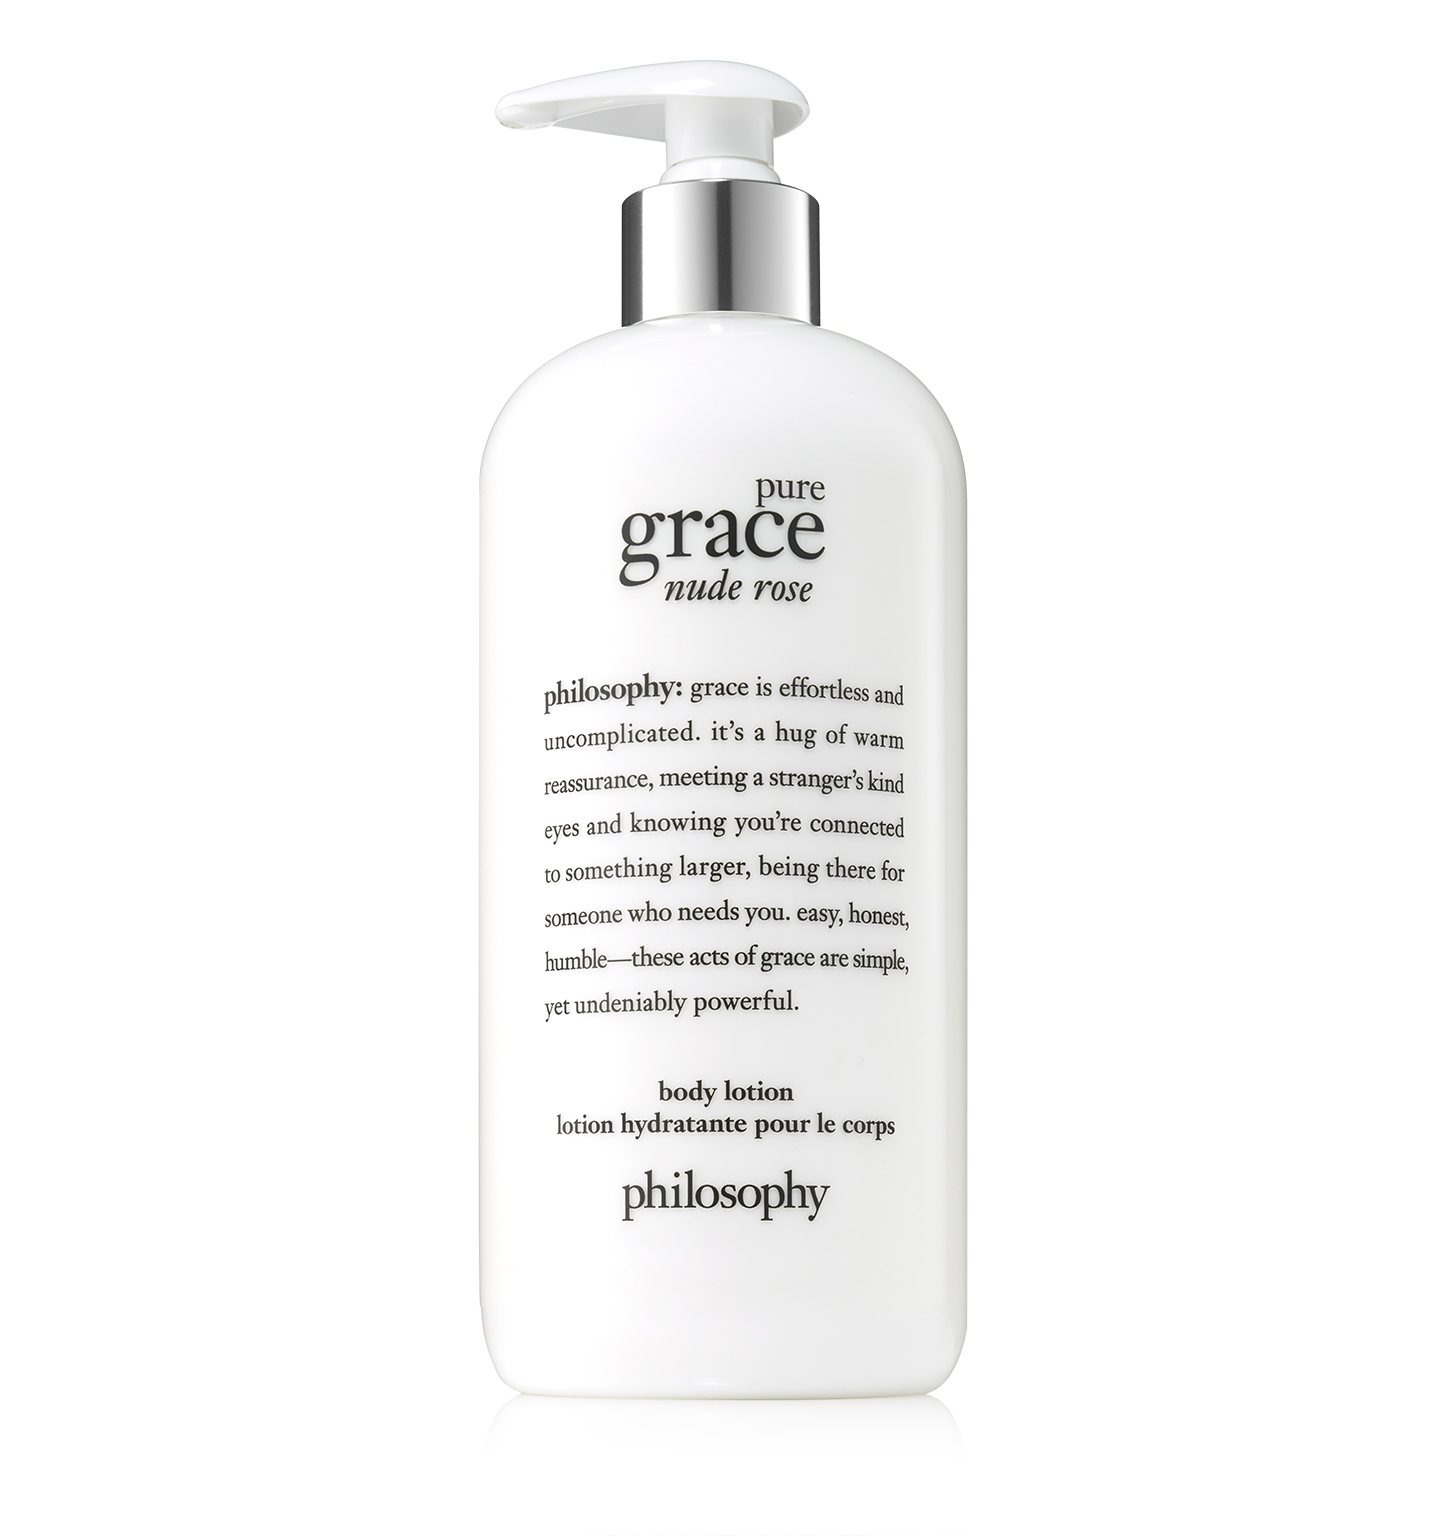 philosophy, pure grace nude rose